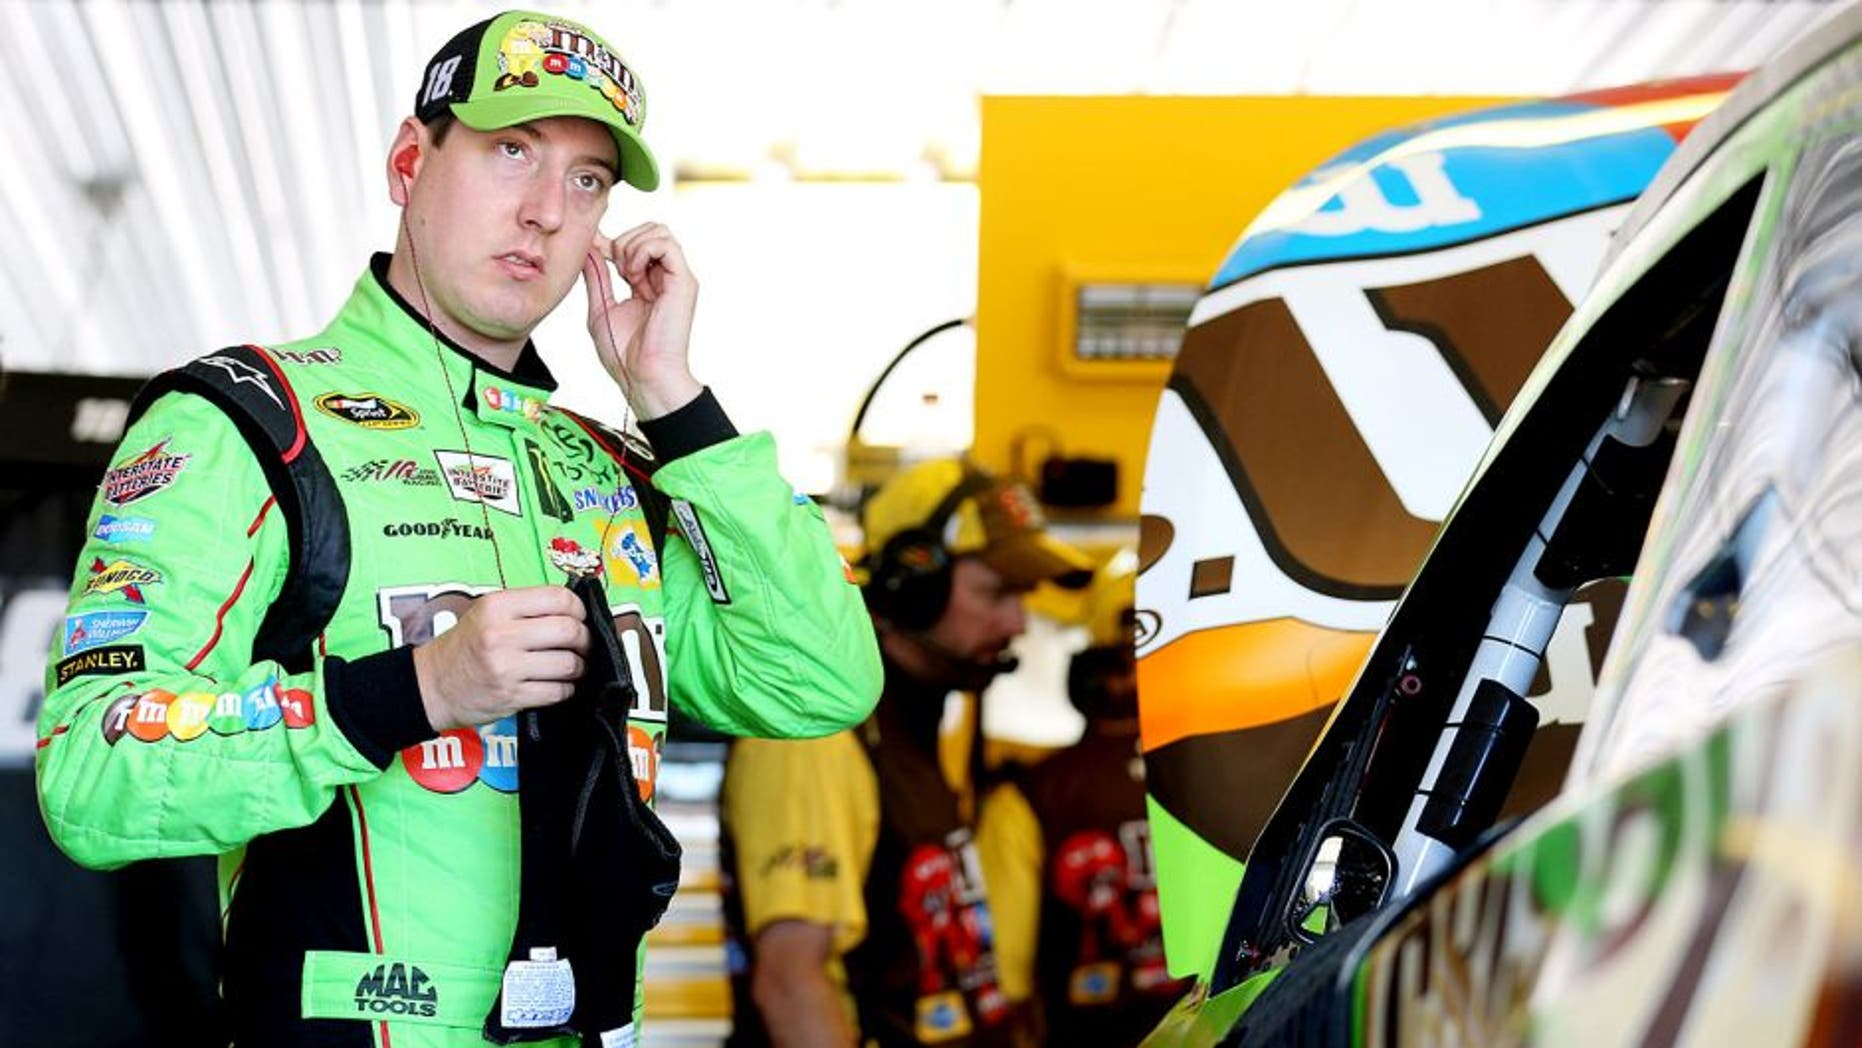 LONG POND, PA - JULY 31: Kyle Busch, driver of the #18 M&M's Crispy Toyota, stands in the garage during practice for the NASCAR Sprint Cup Series Windows 10 400 at Pocono Raceway on July 31, 2015 in Long Pond, Pennsylvania. (Photo by Nick Laham/Getty Images)